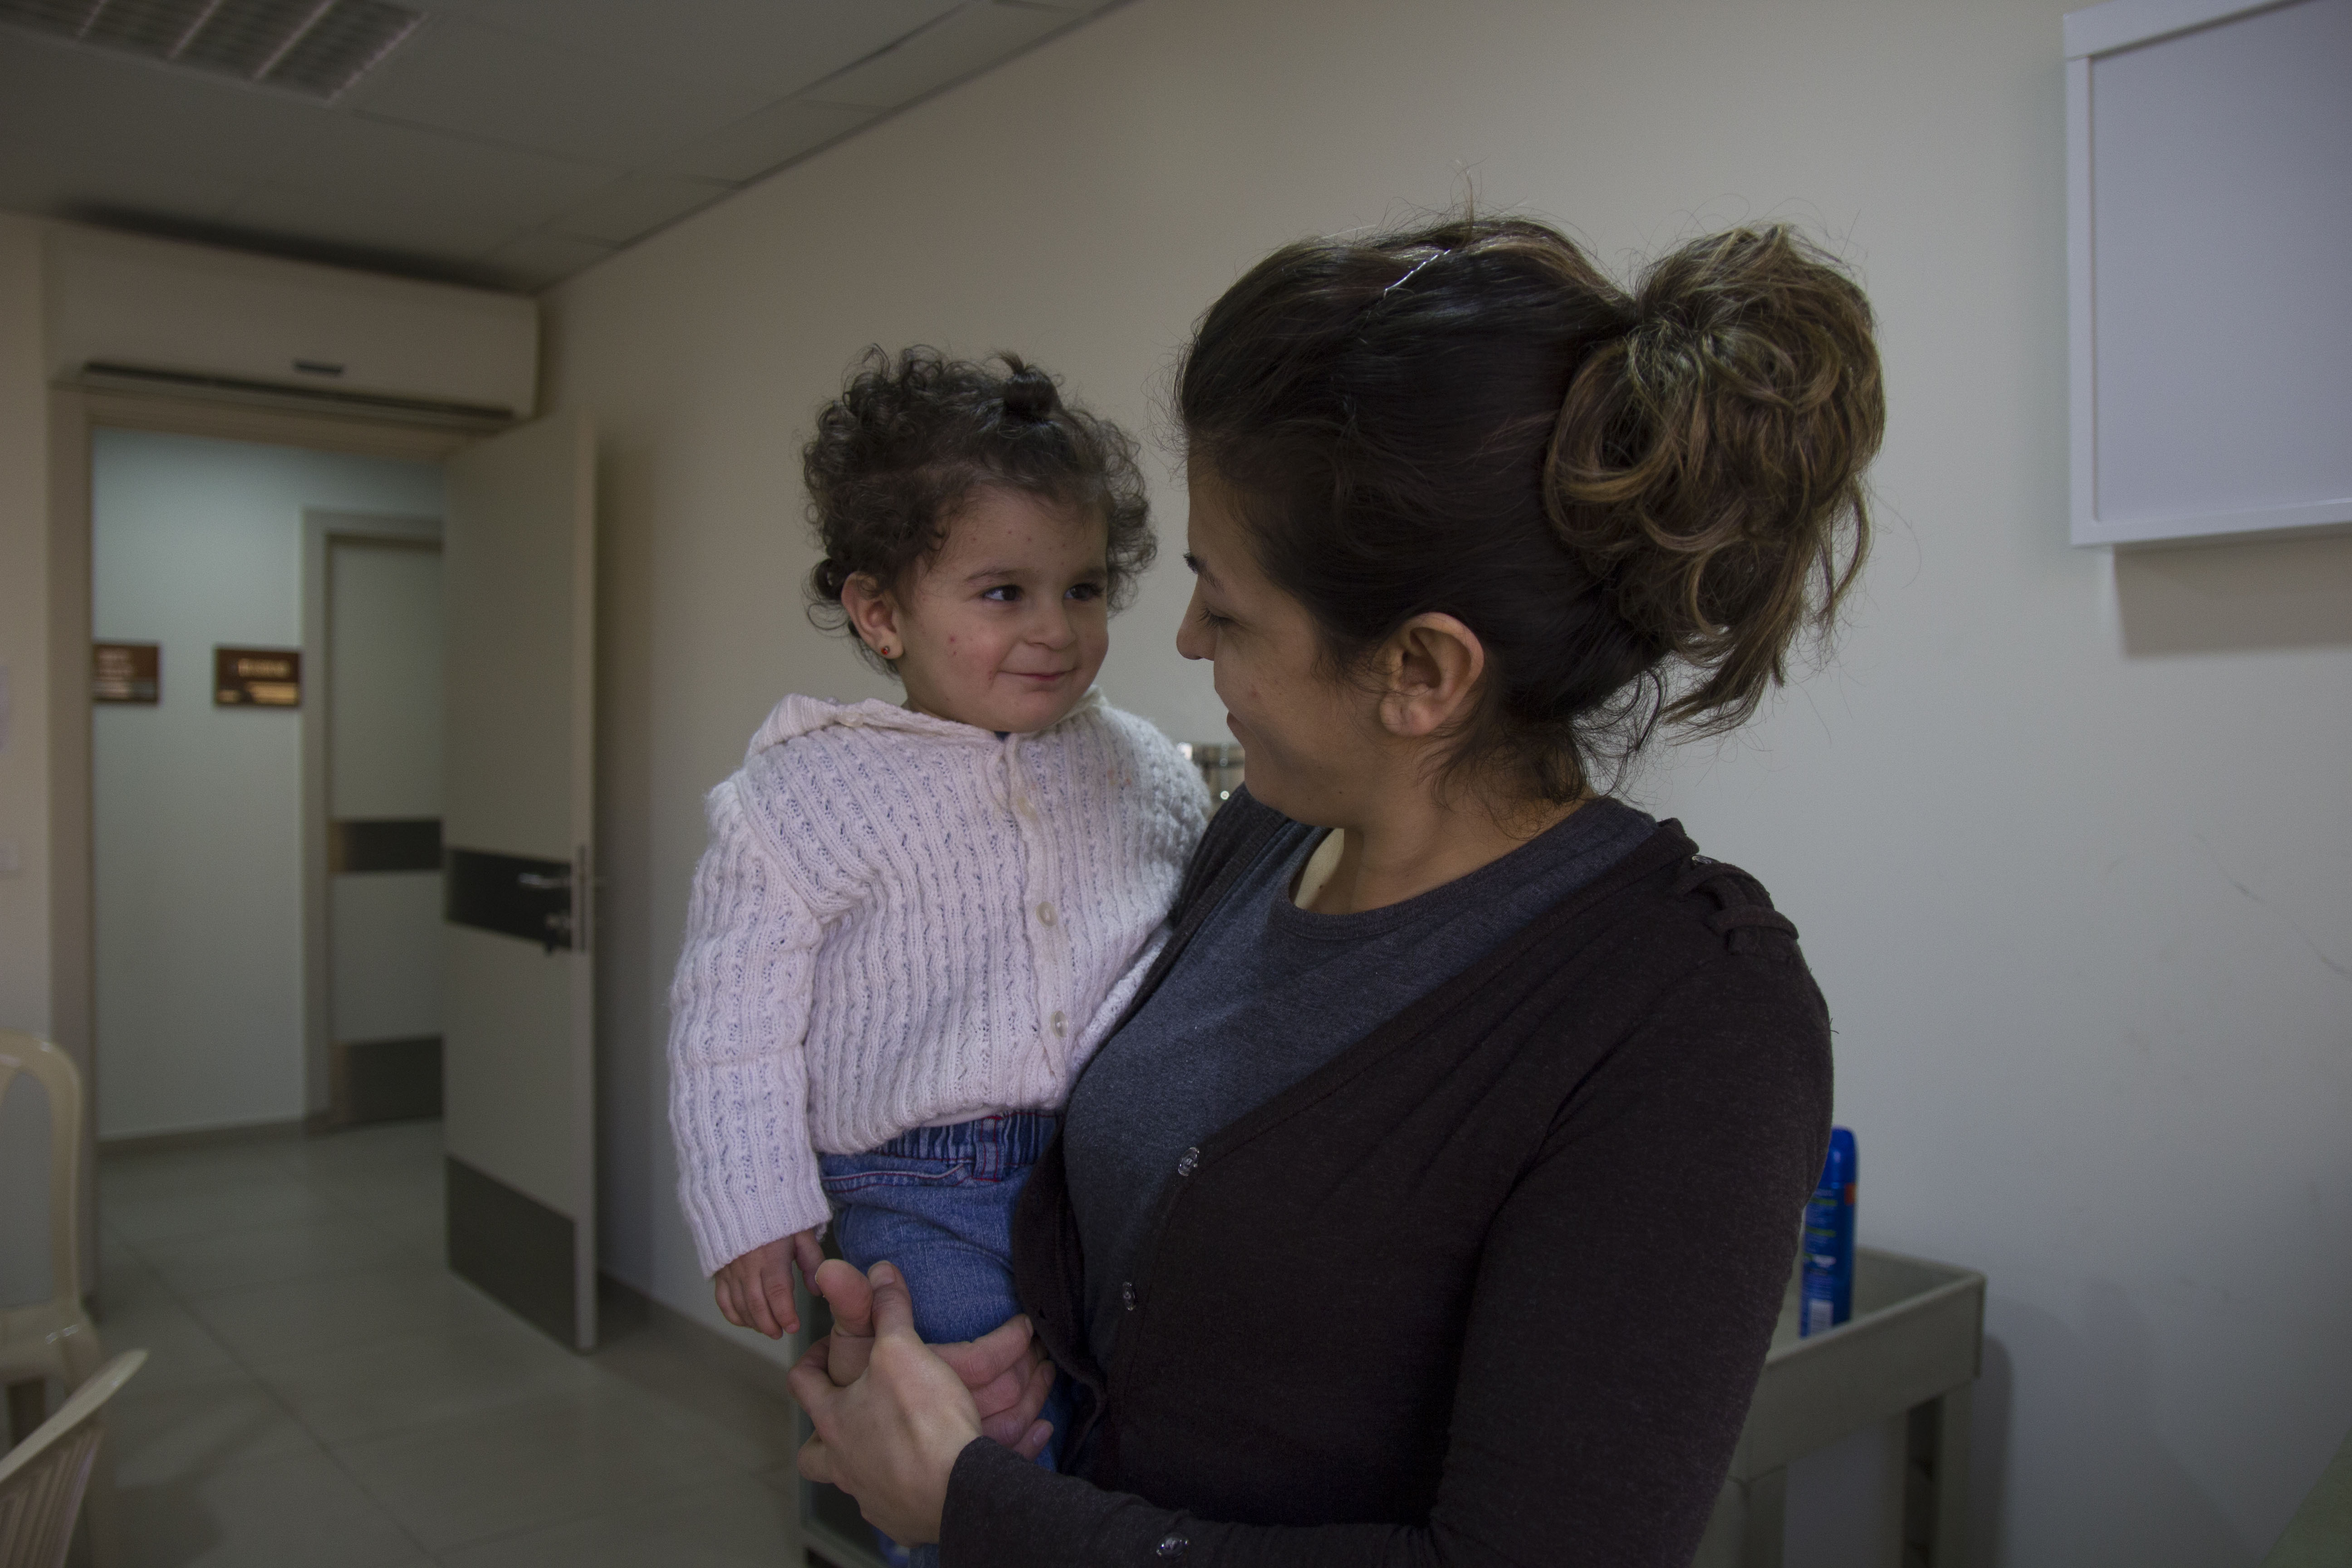 Hanigal and her daughter Helena, supported by CAFOD and Caritas